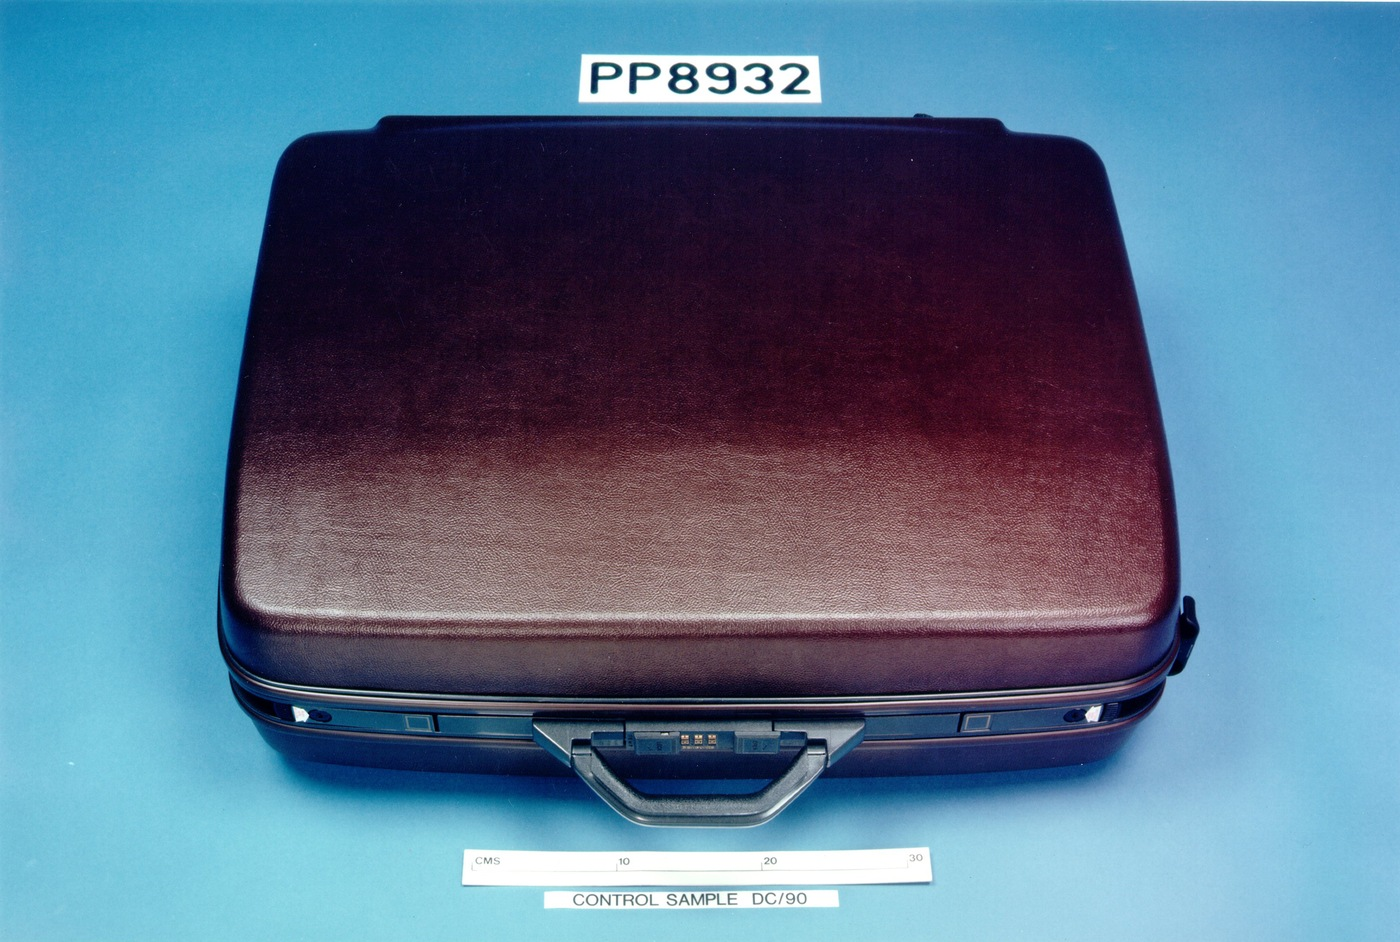 Replica of the suitcase that contained the explosives used in the December 21, 1988 bombing of Pam Flight 103 over Lockerbie, Scotland. (Syracuse University photo)